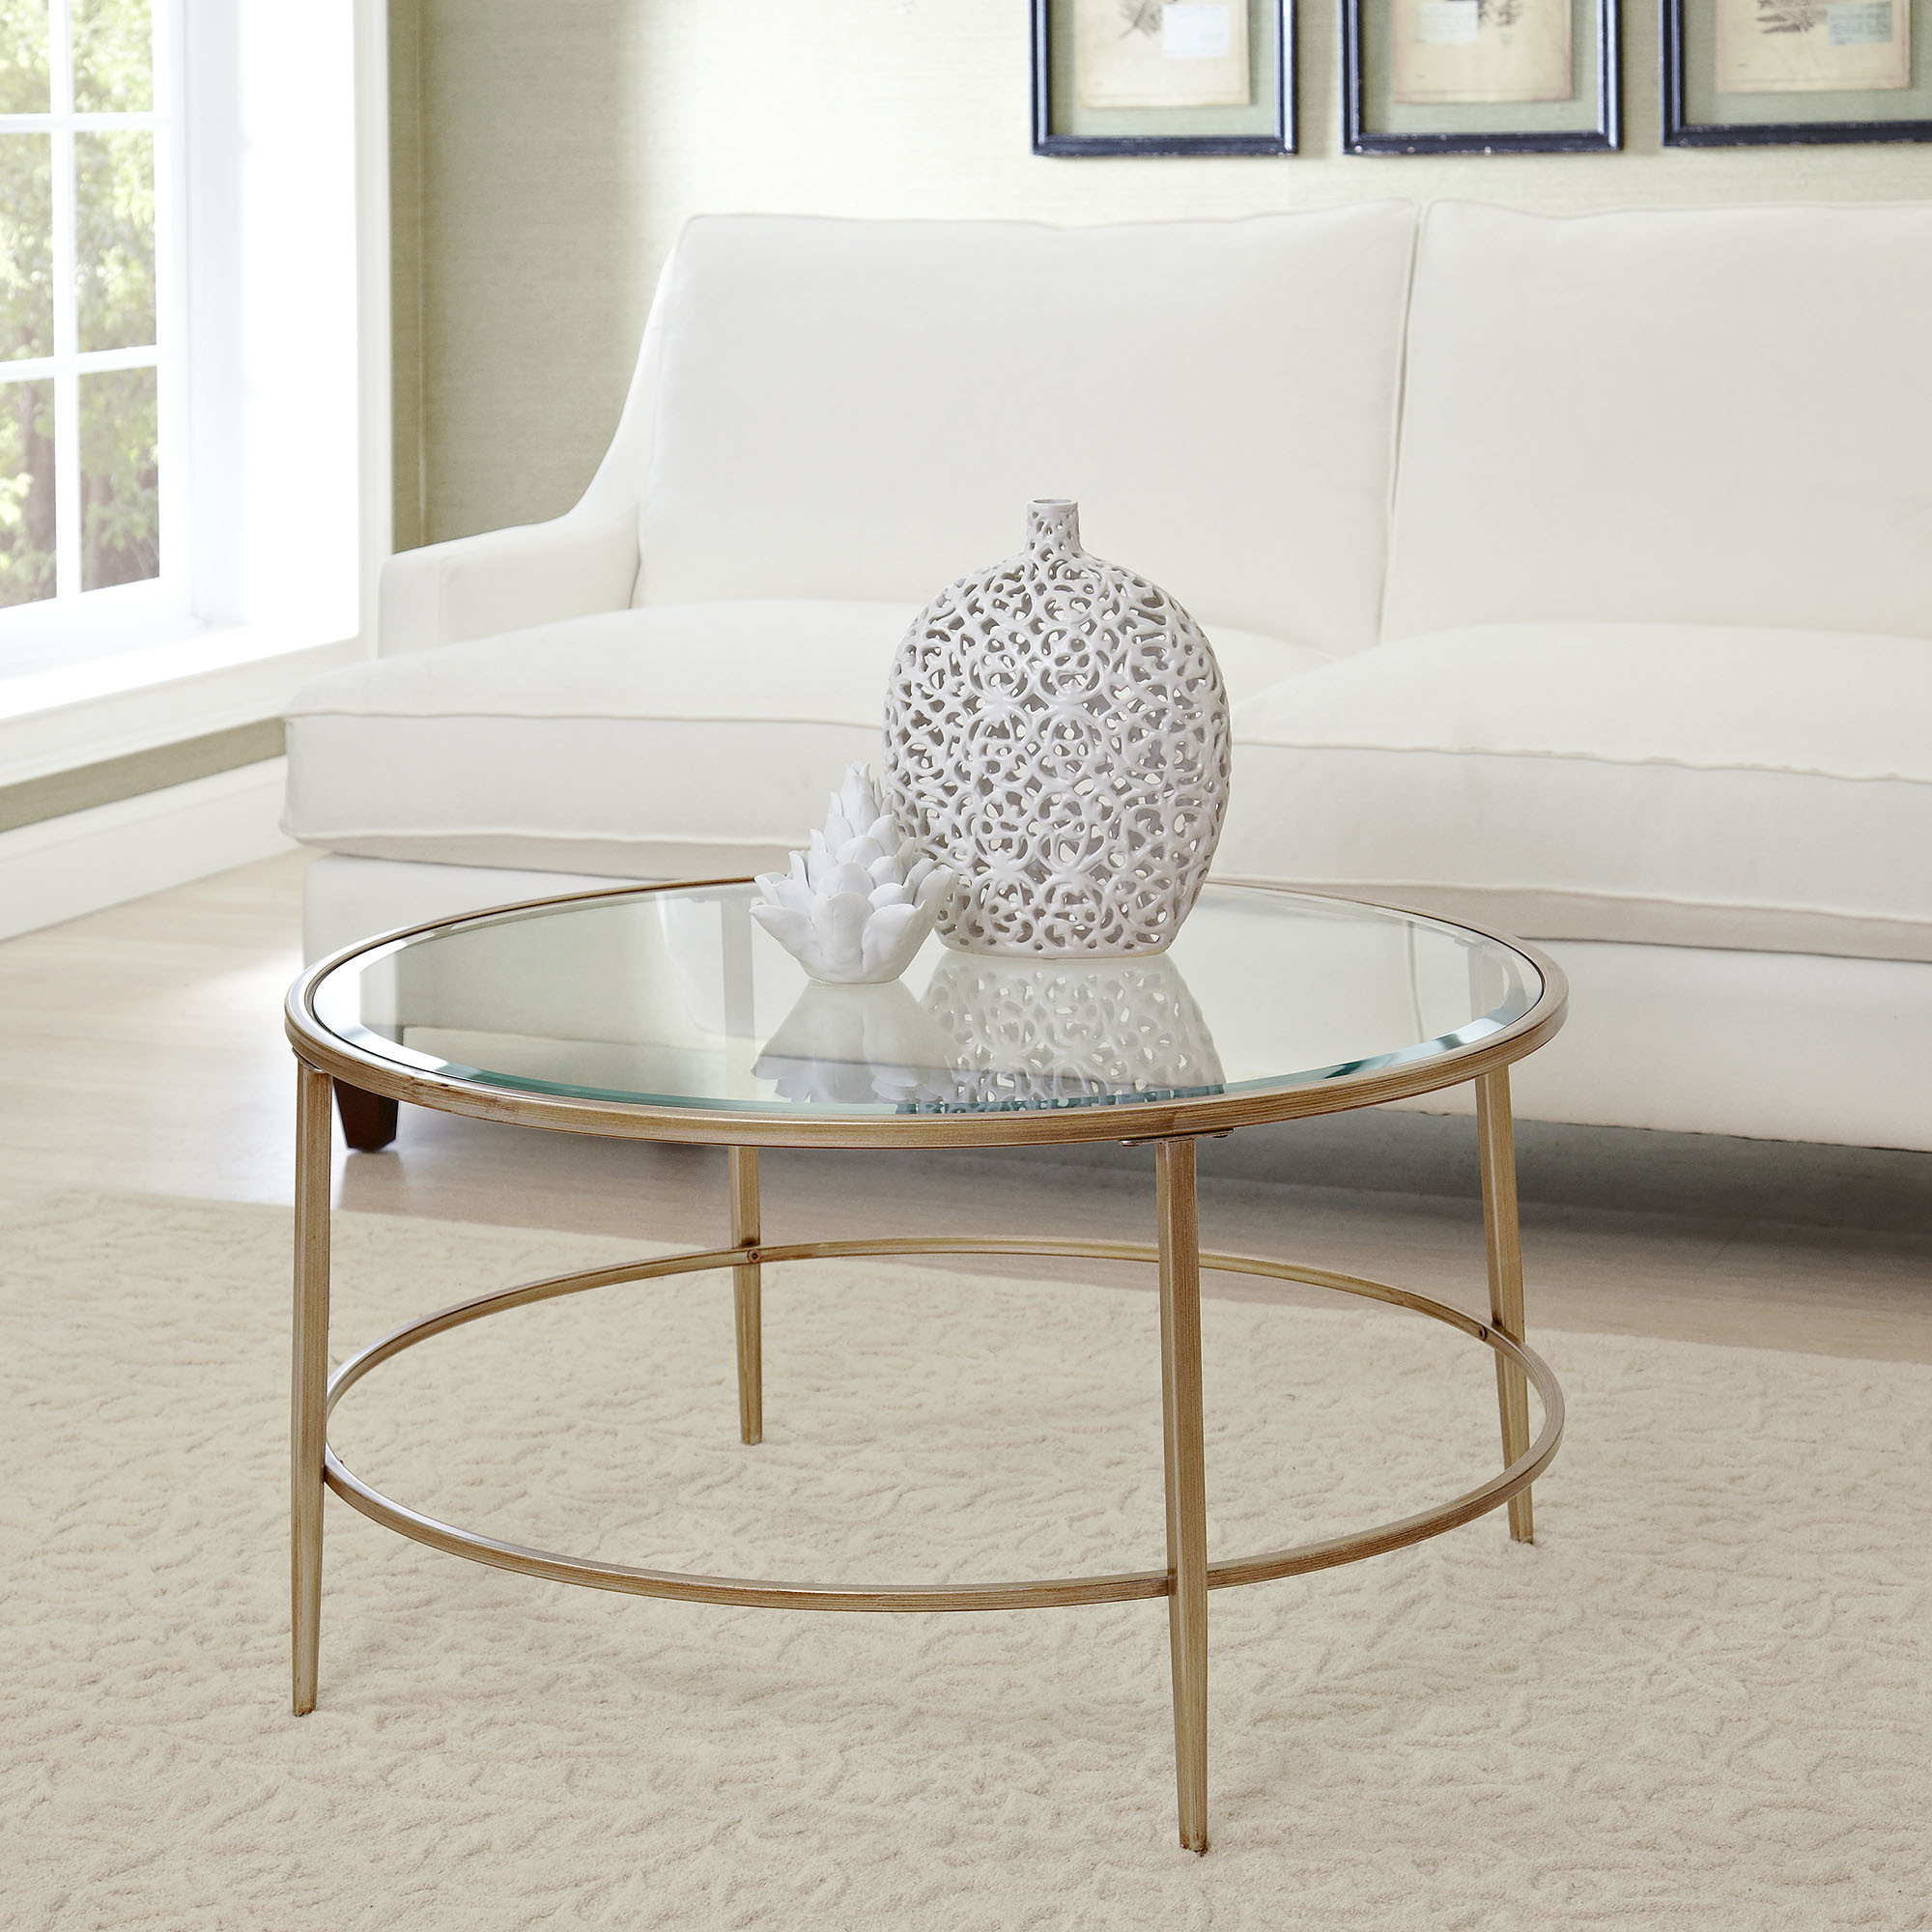 Most Recent Exciting Small Glass Coffee Table Style Design (View 12 of 20)